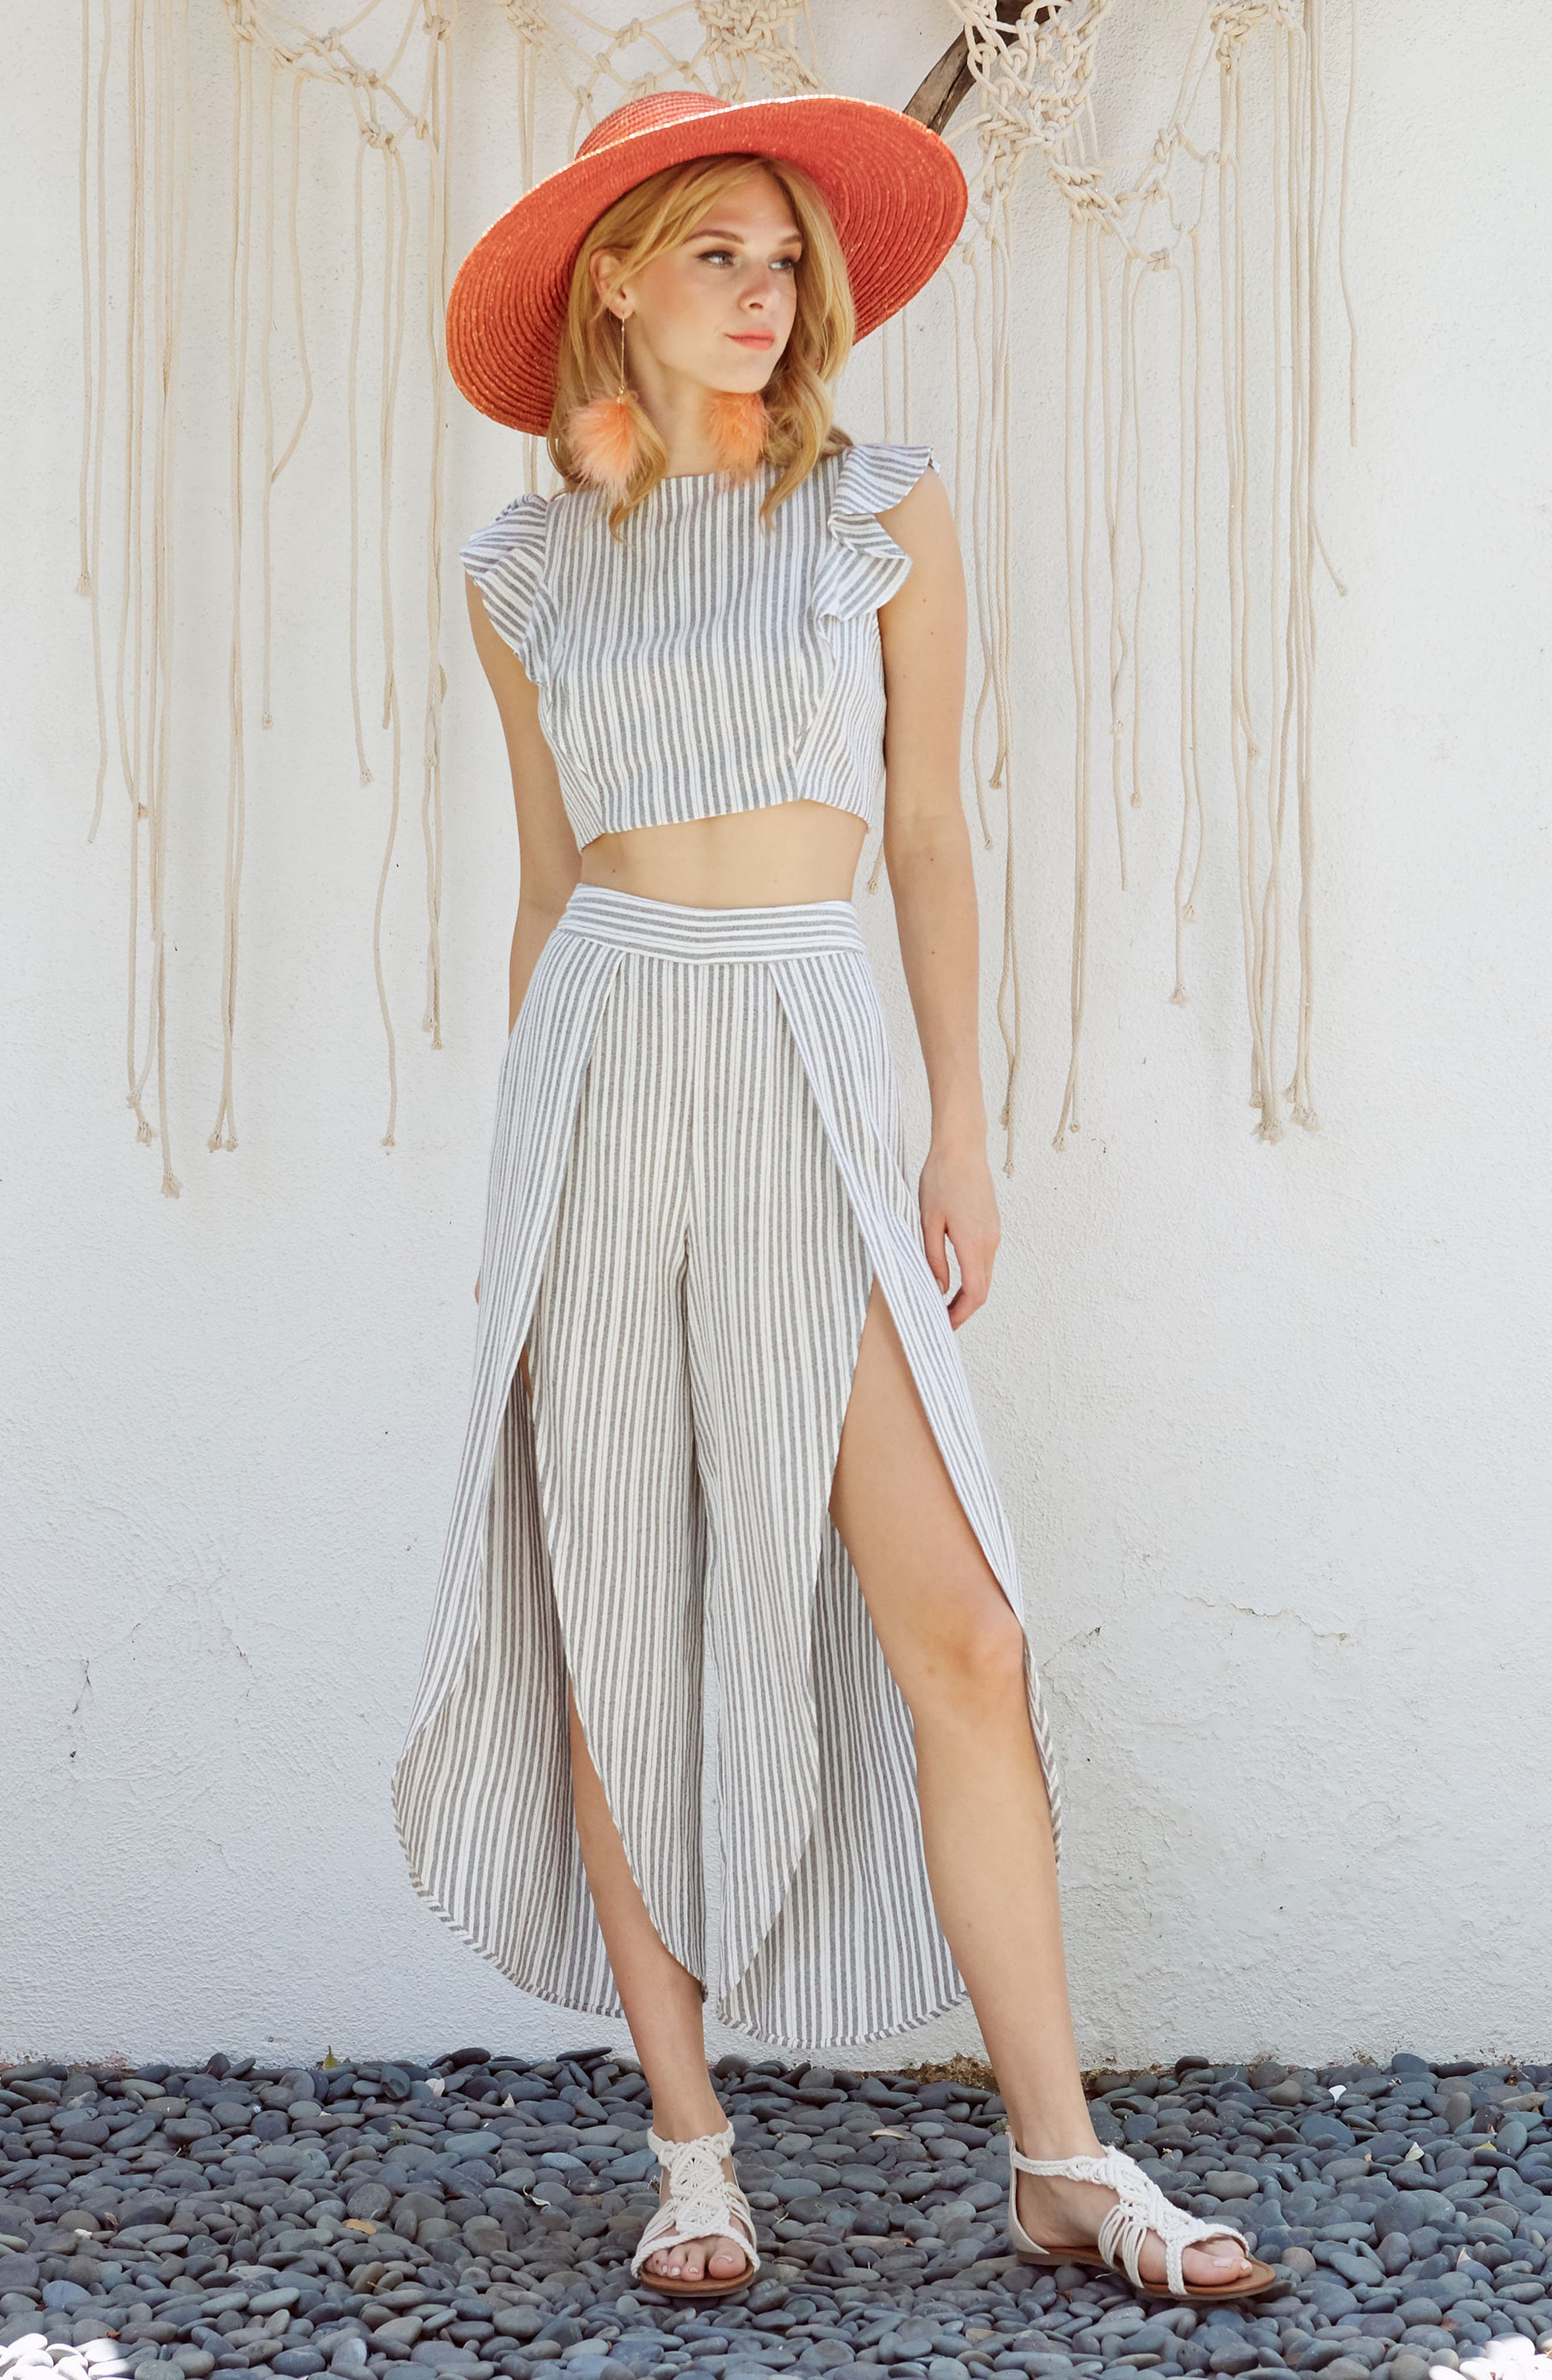 kika-stripe-split-culottes by lost-+-wander